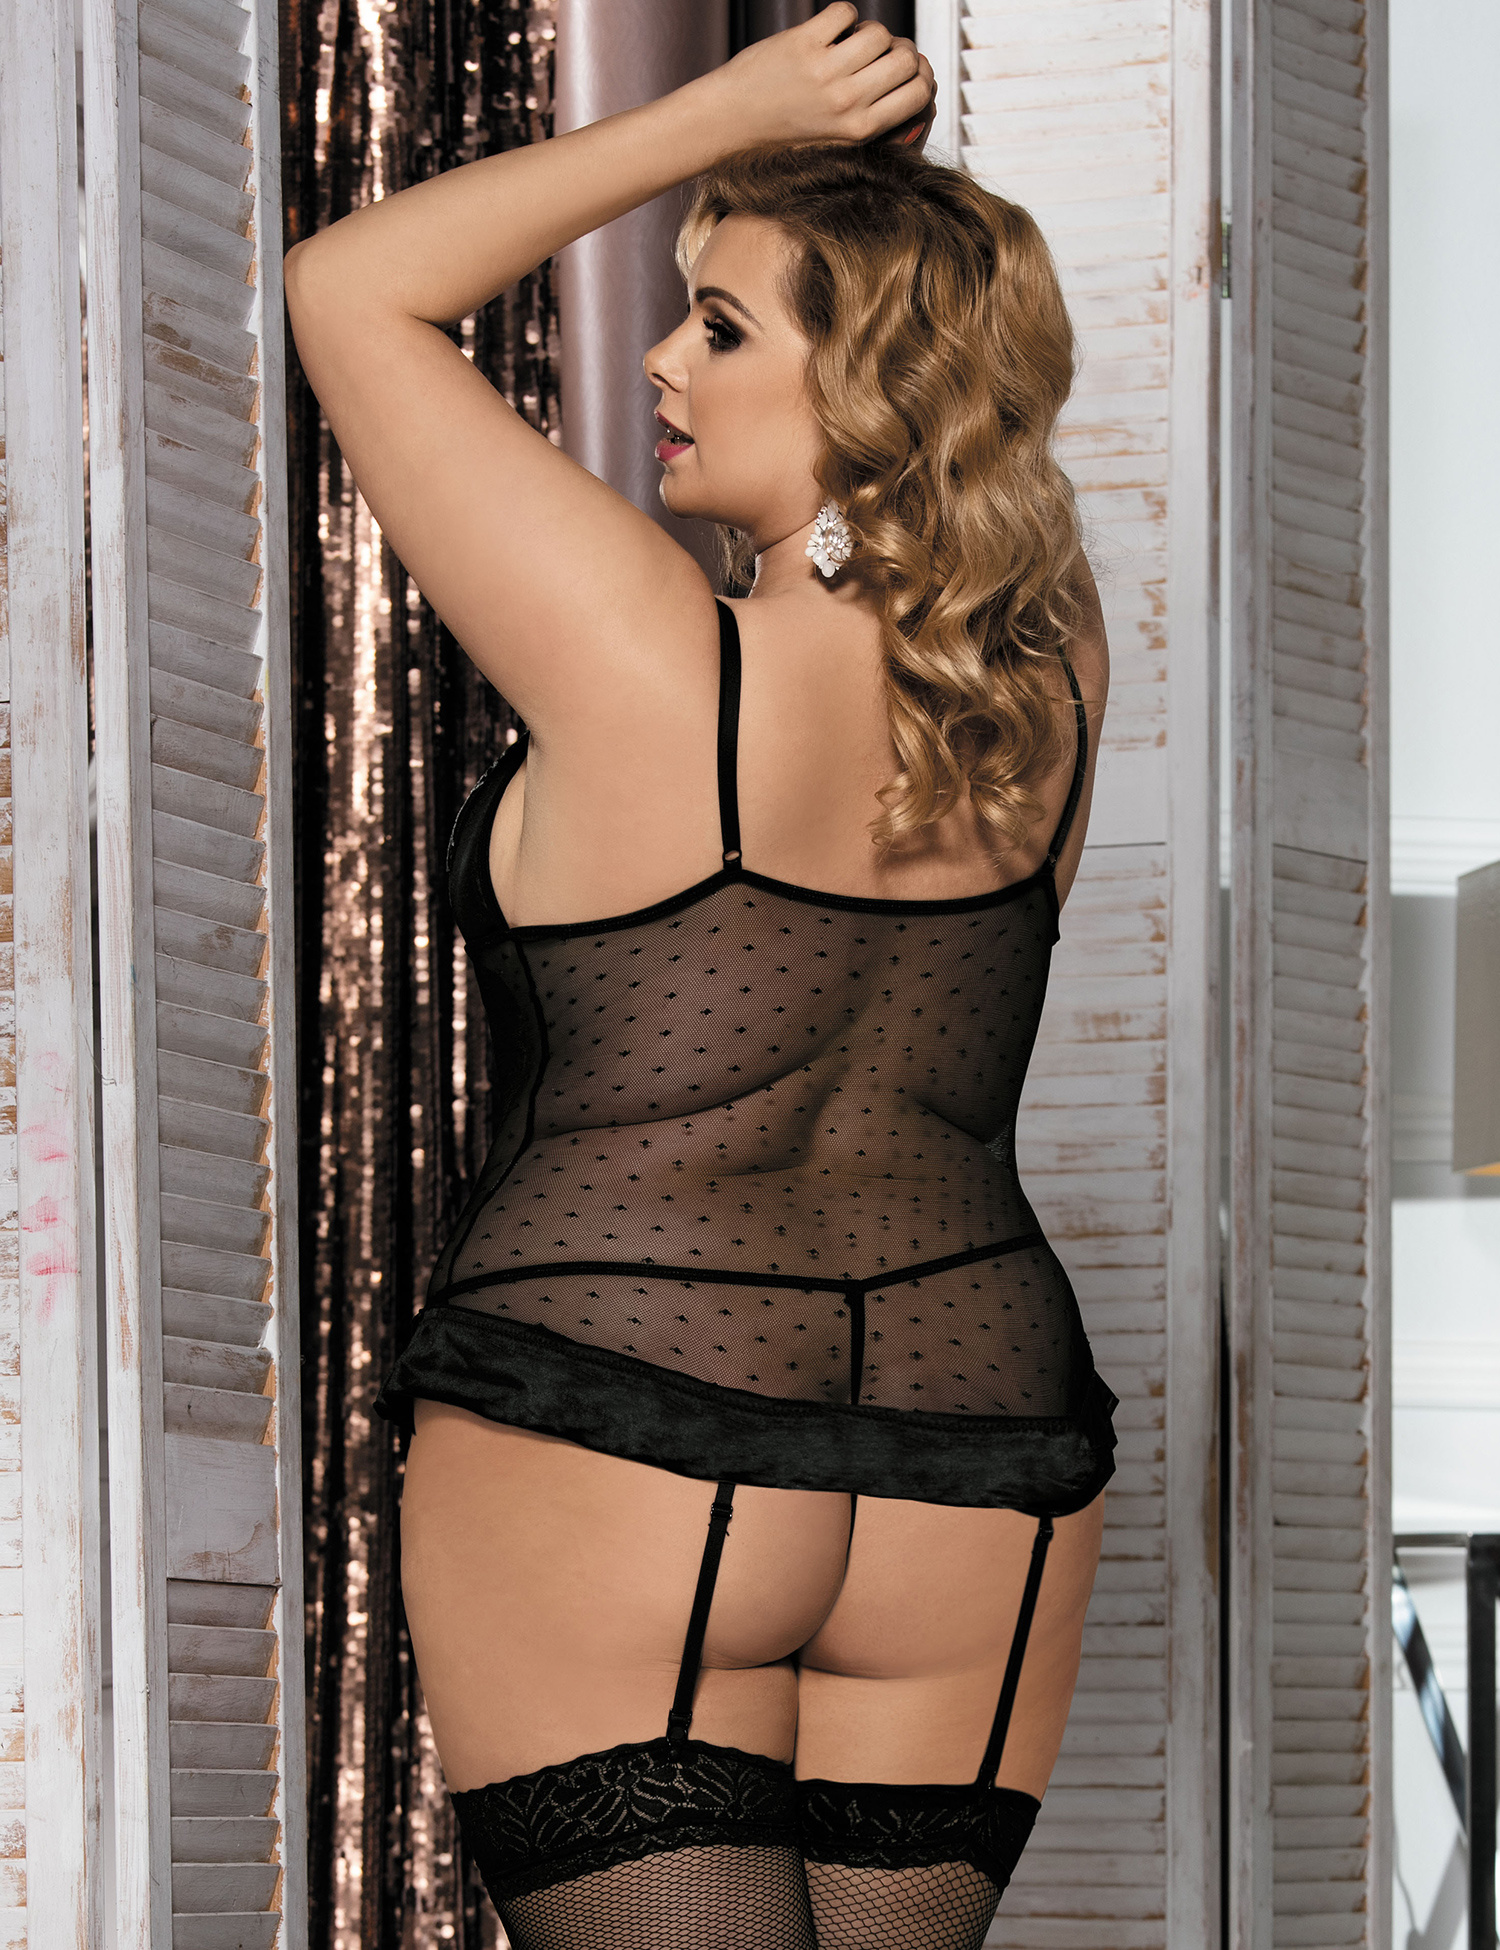 6aa9025256c Black Plus Size Lingerie Floral See-Through Babydoll - China Fat ...